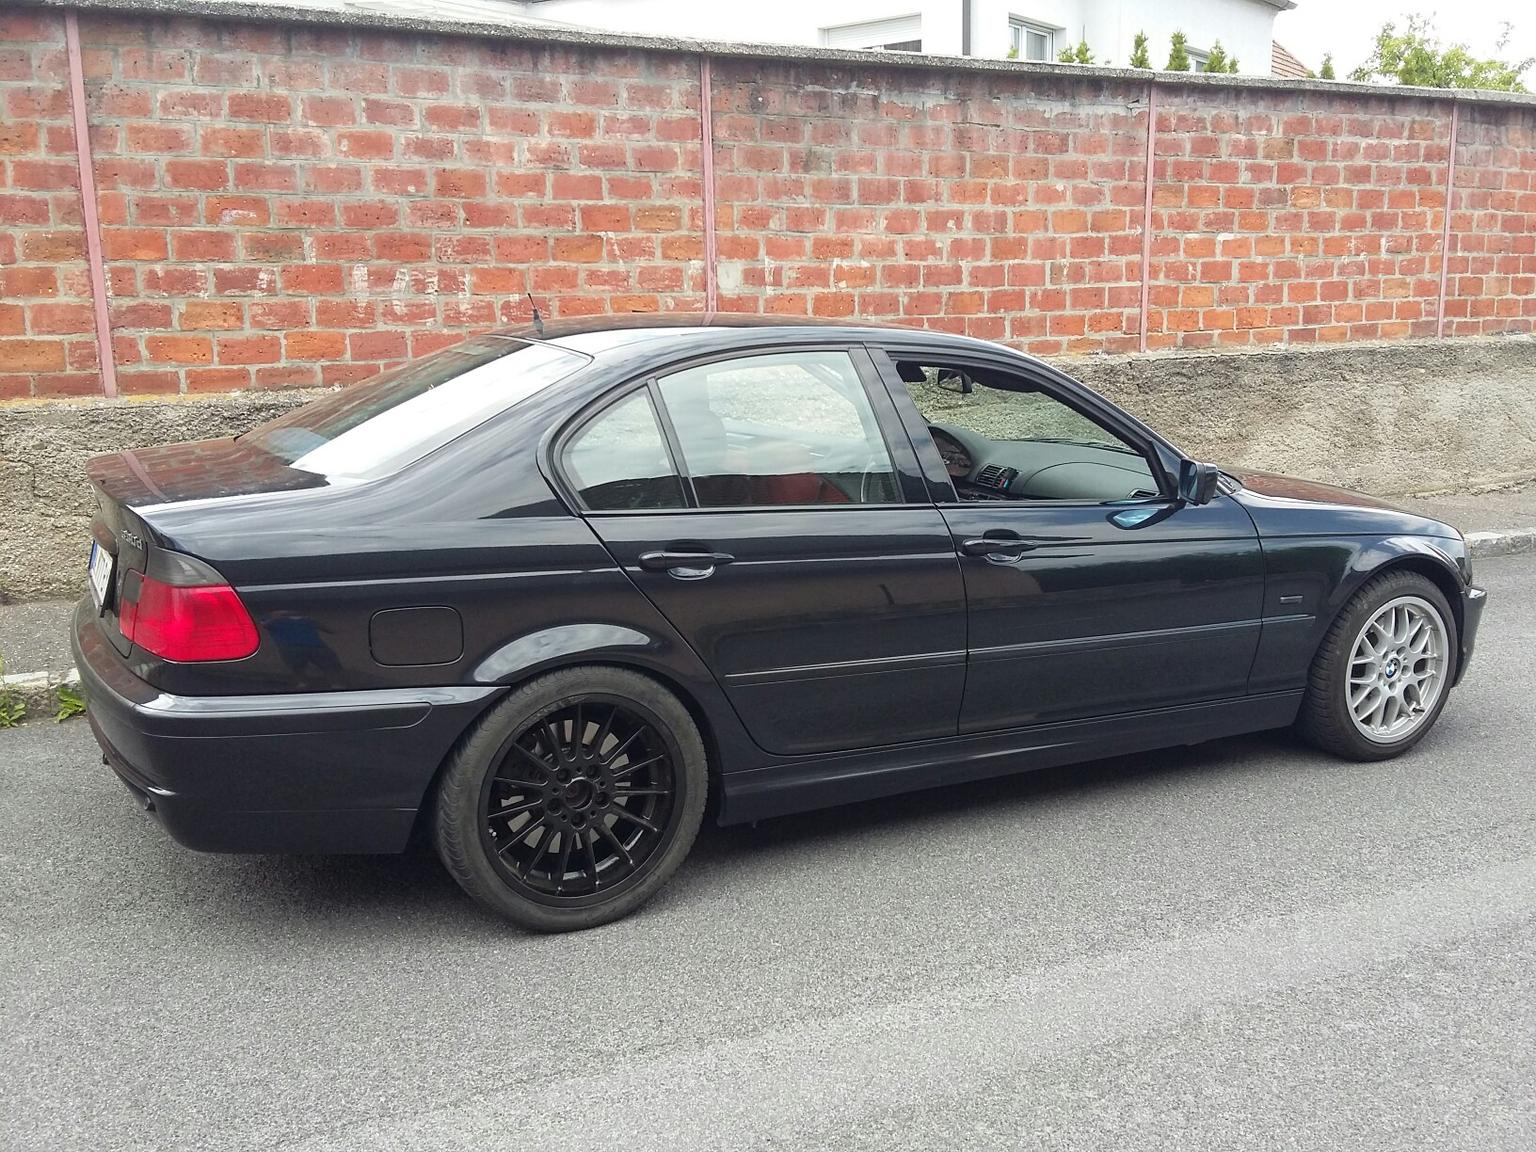 bmw e39 styling 32 18 zoll felgen in 7222 rohrbach bei mattersburg for for sale shpock. Black Bedroom Furniture Sets. Home Design Ideas